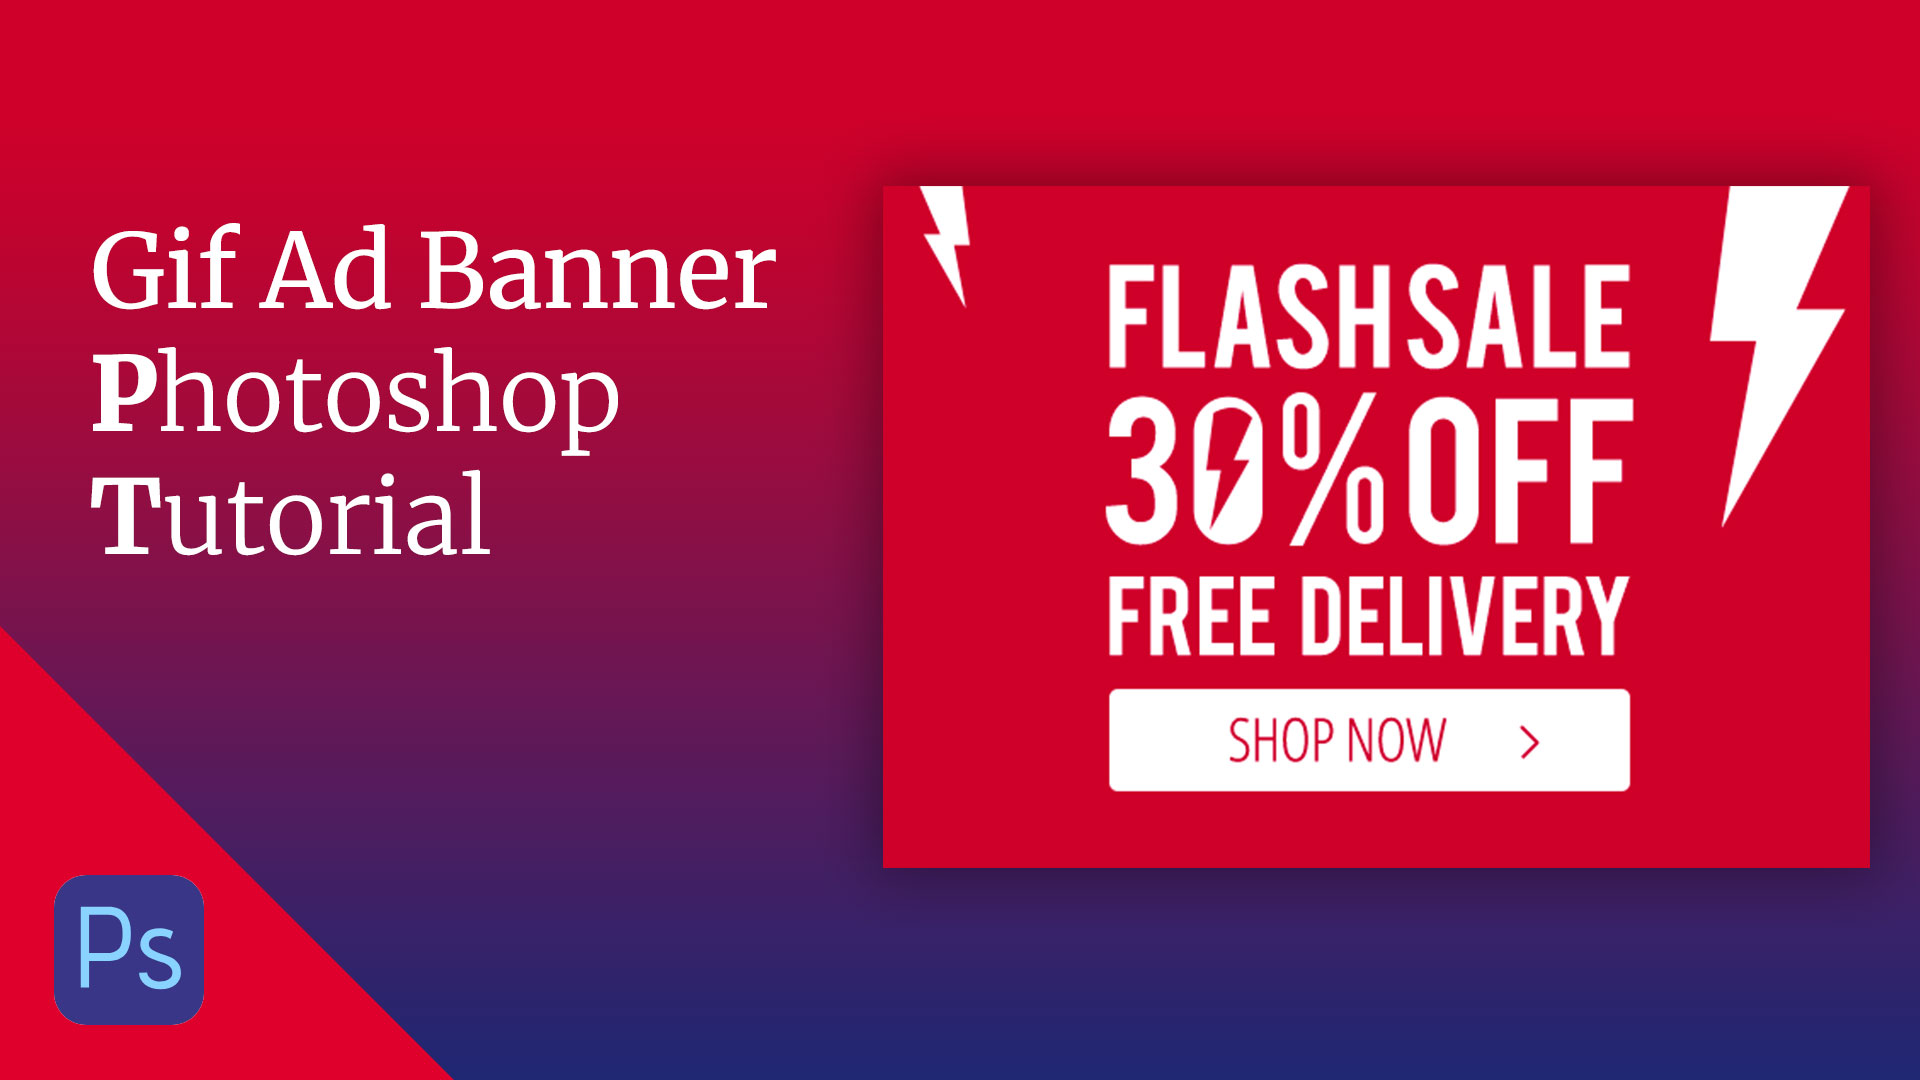 Gif Ad Banner Design & Animation Photoshop Tutorial